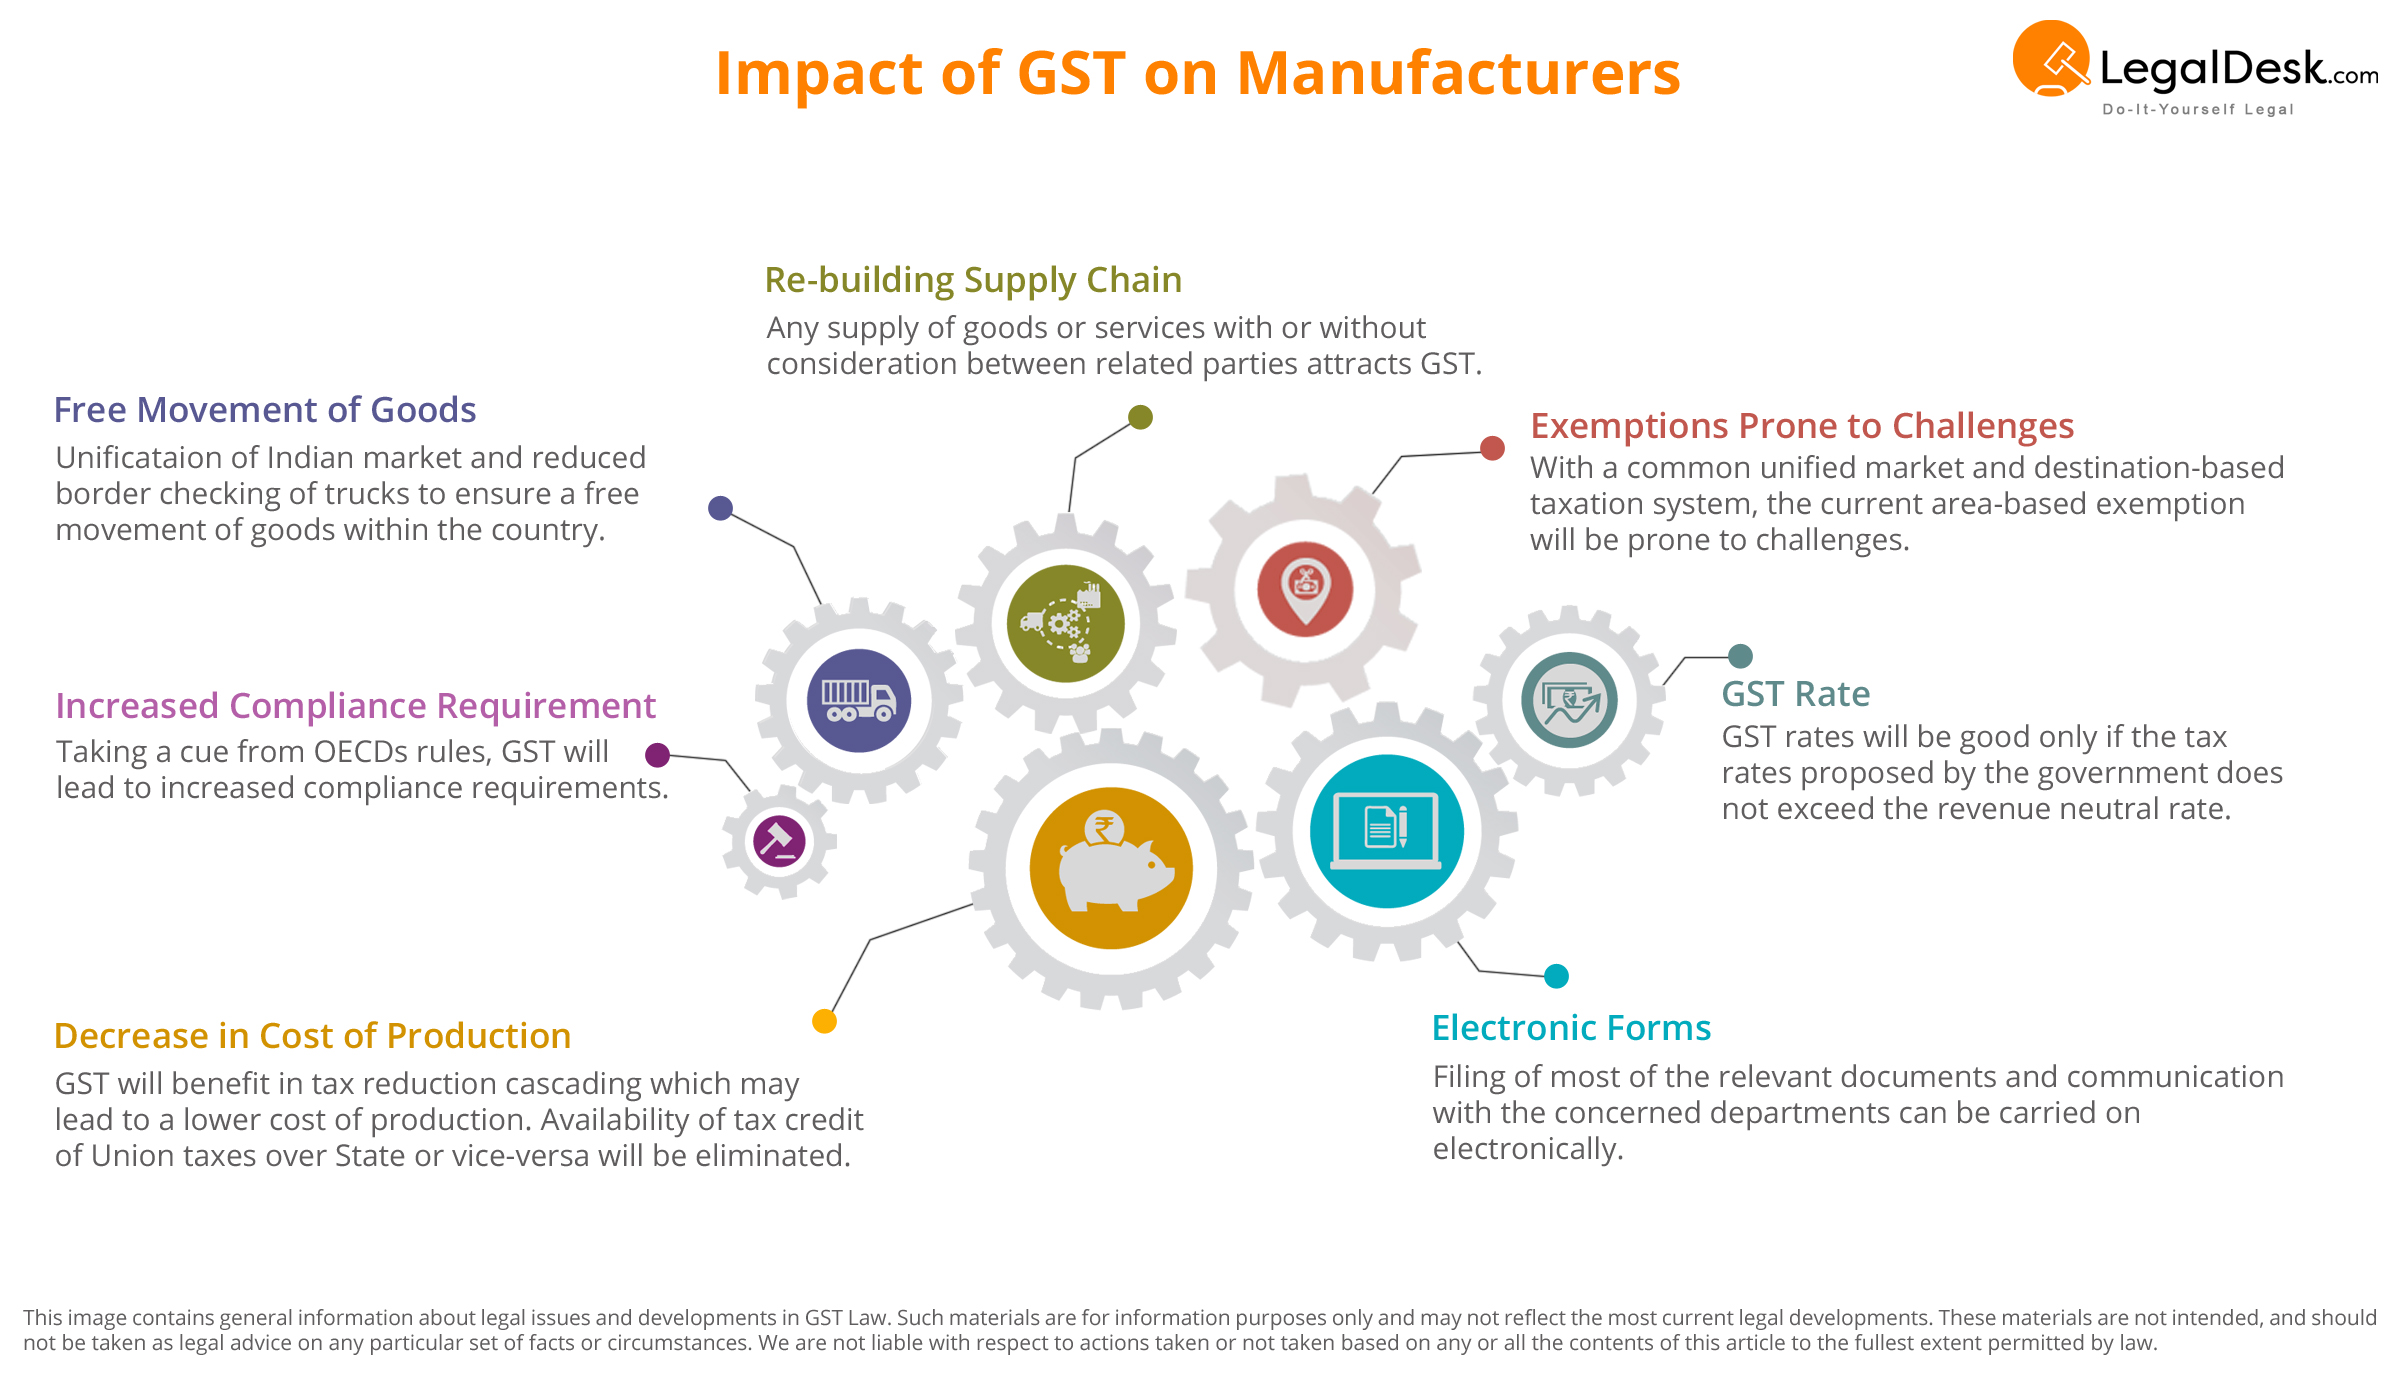 How GST impacts manufacturers